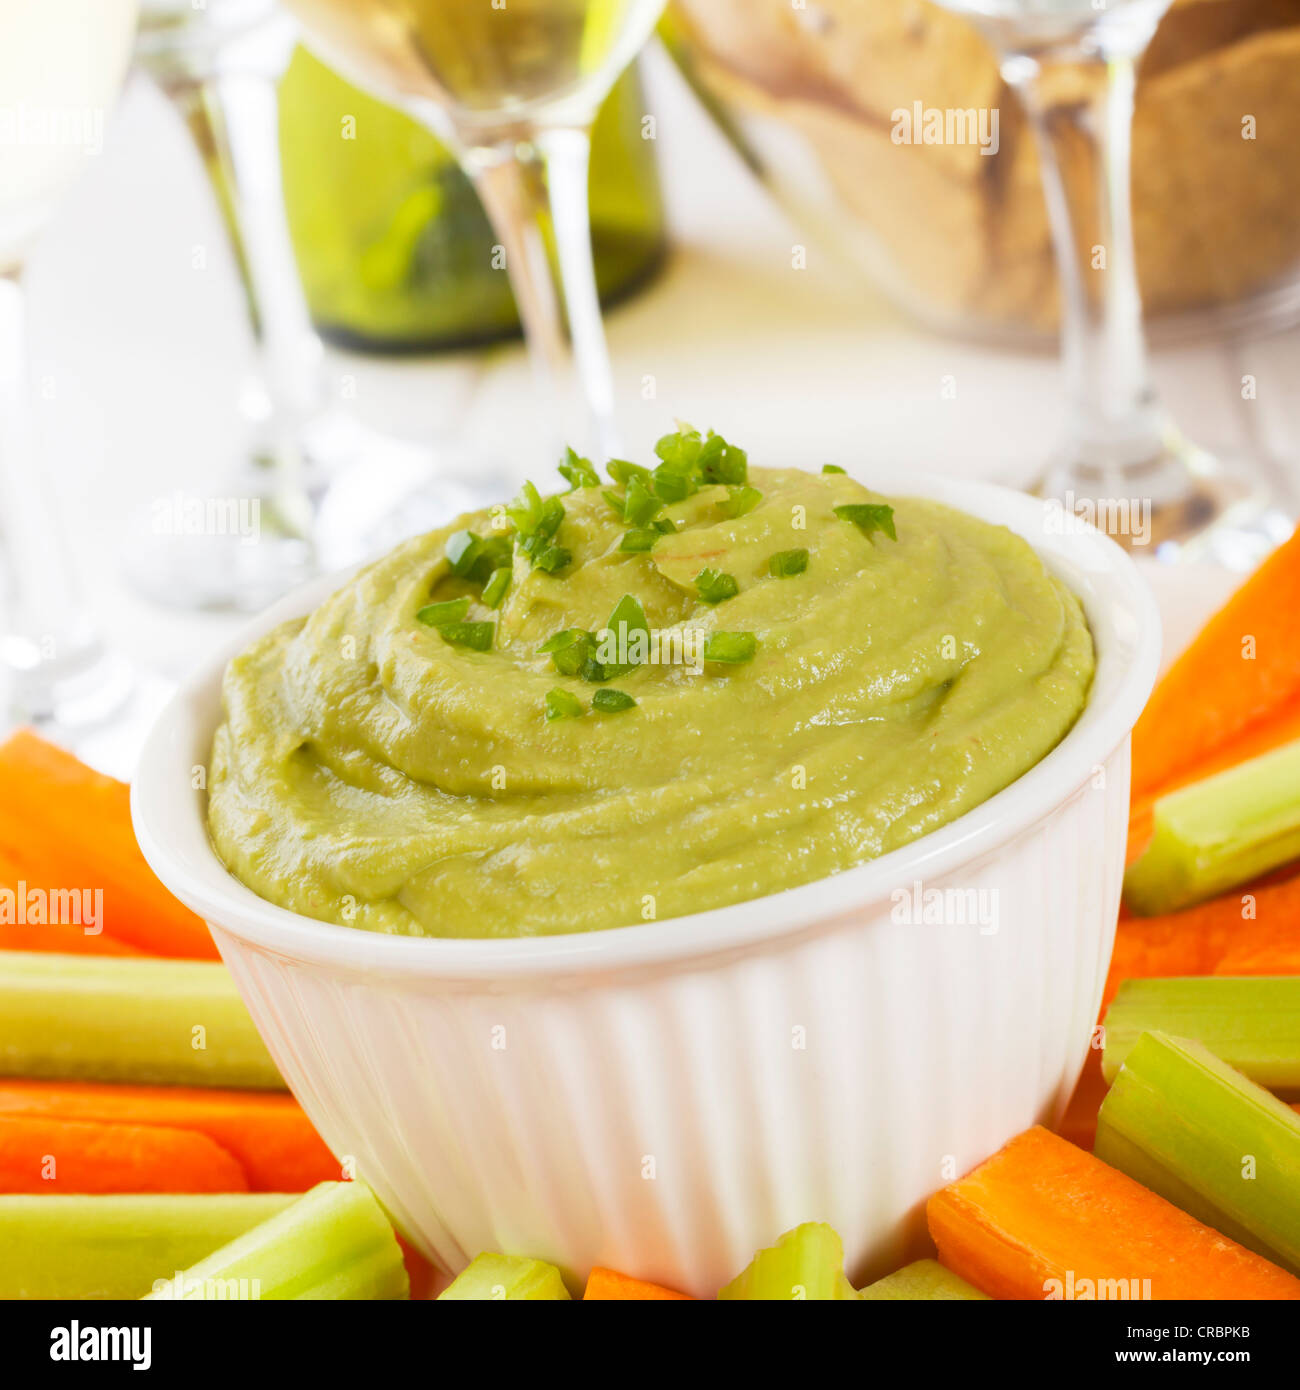 Guacamole topped with fresh green chilli, with carrot and celery sticks for dipping. - Stock Image